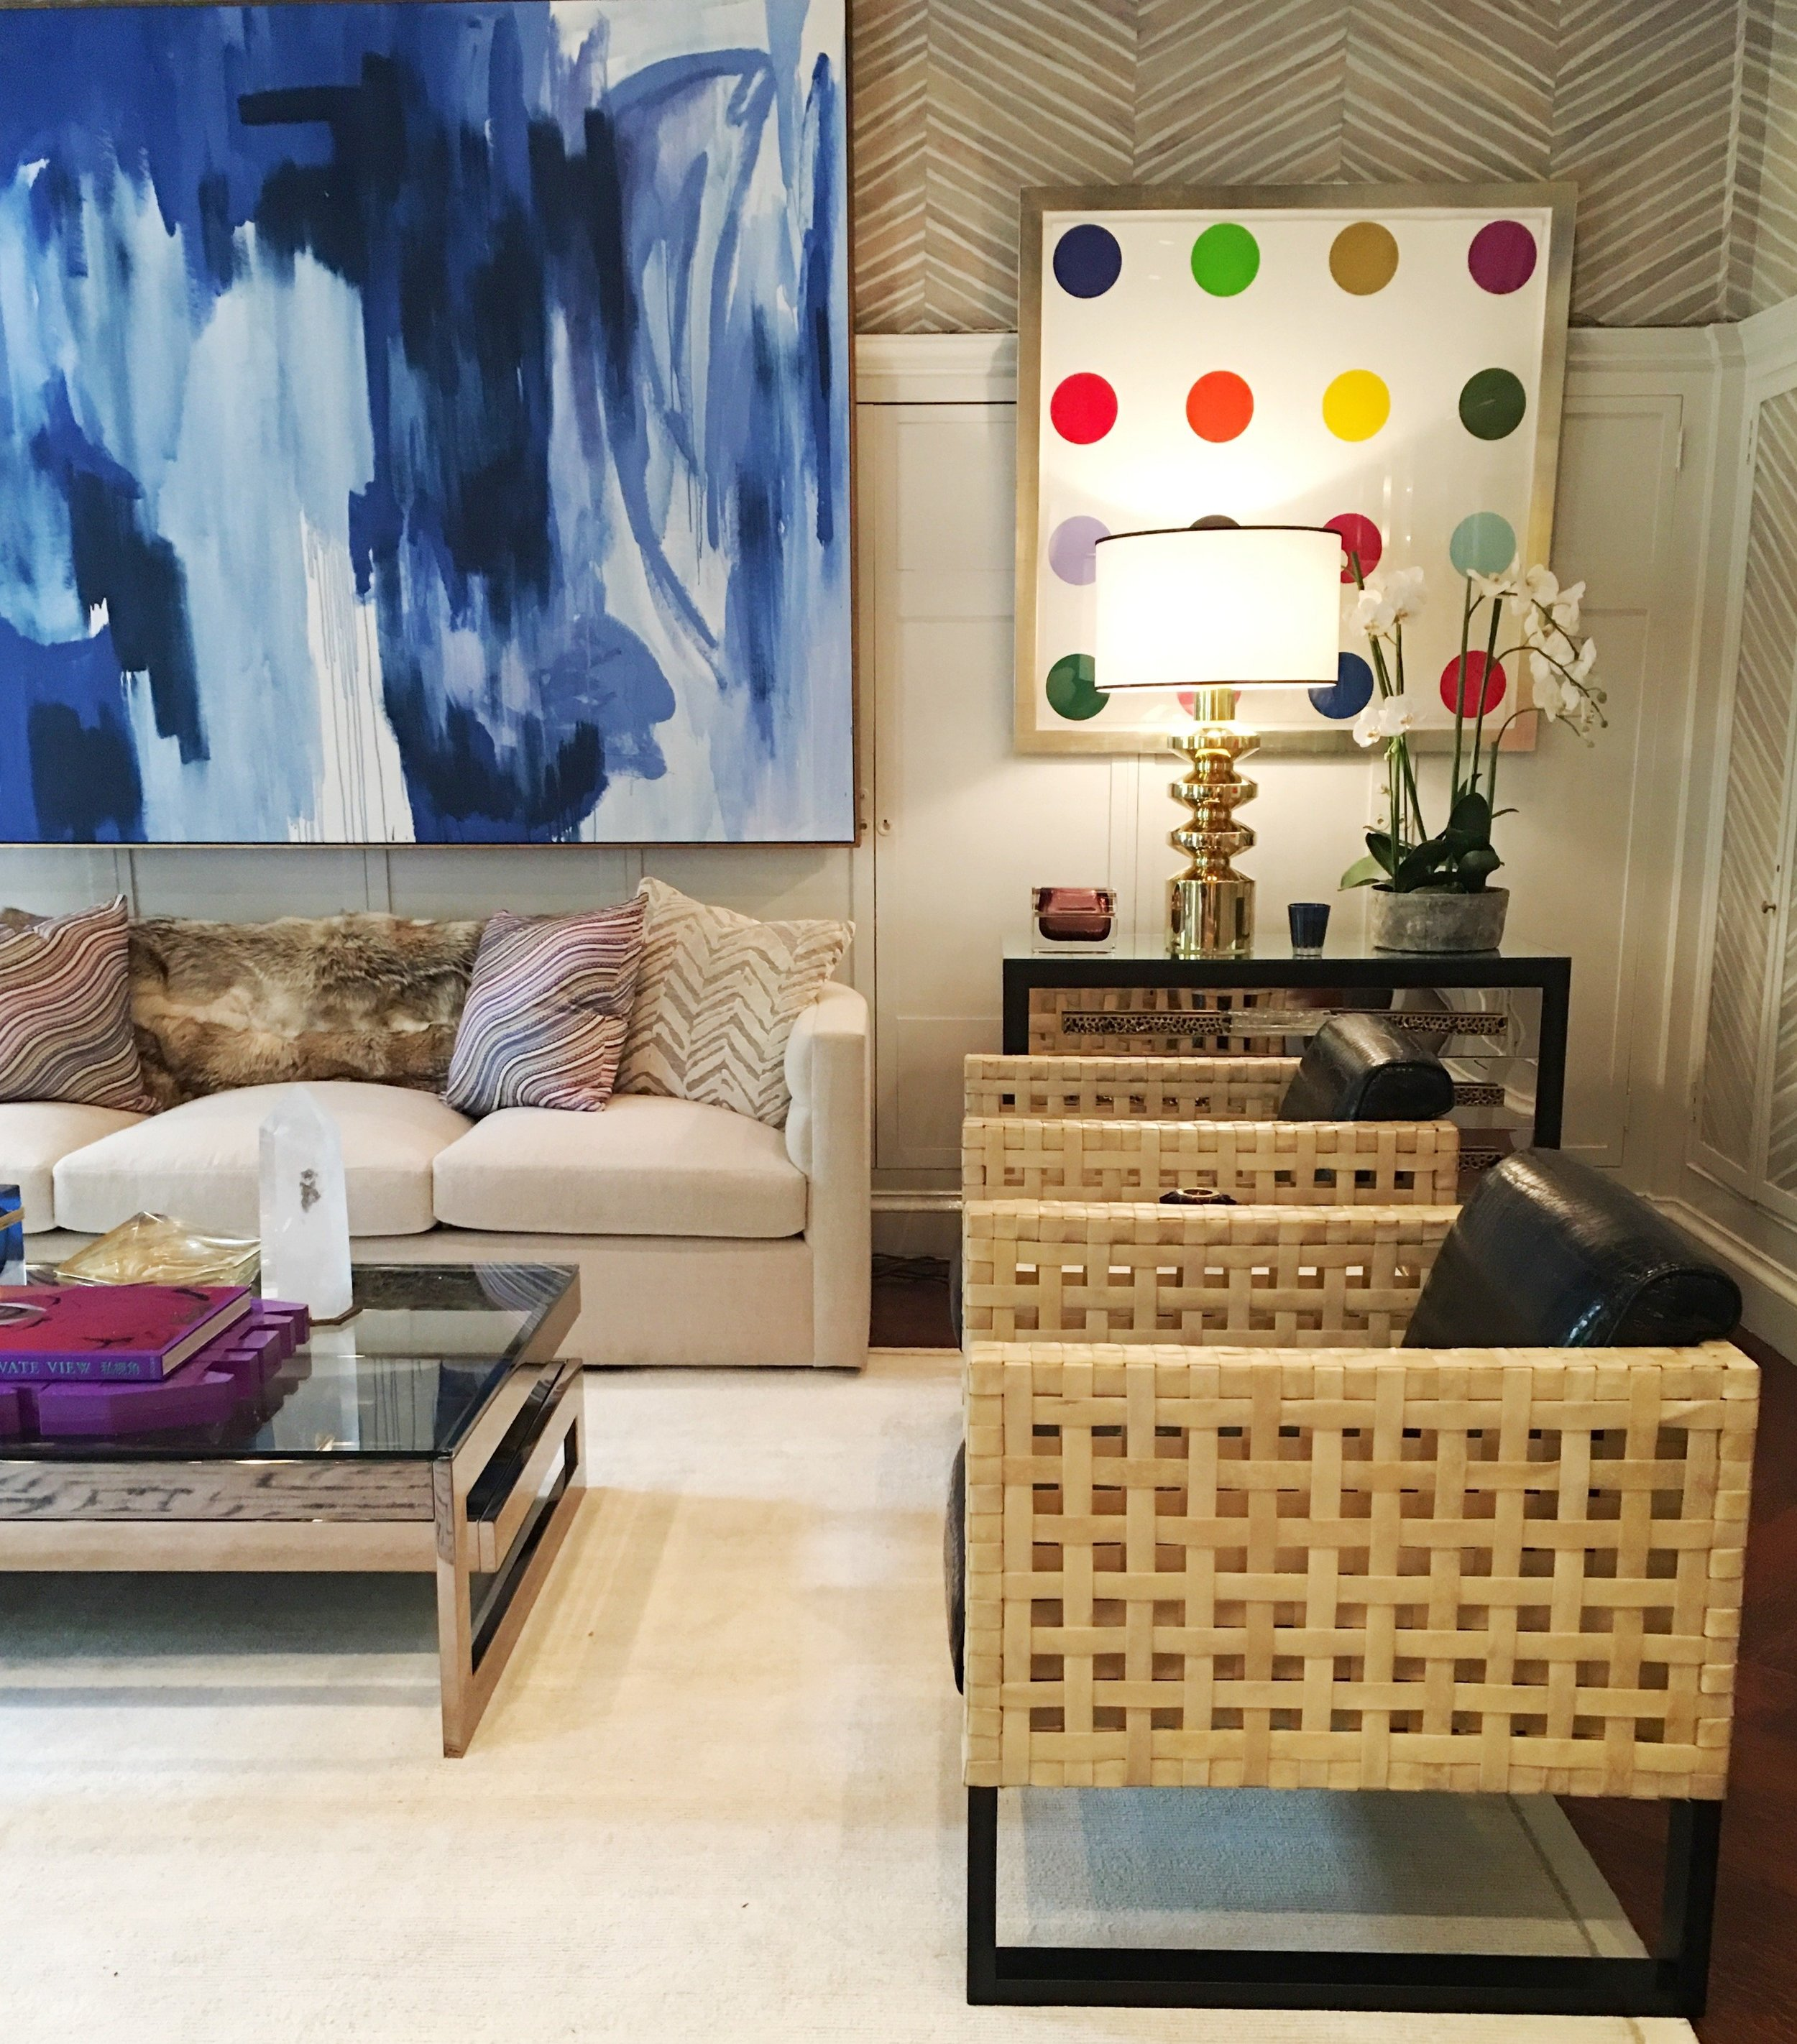 Kirsten Kelli's room in the 45th Kips Bay Show House shows an iconic dot painting by Damien Hirst and part of a lovely blue abstract by Corinne Bizzle.